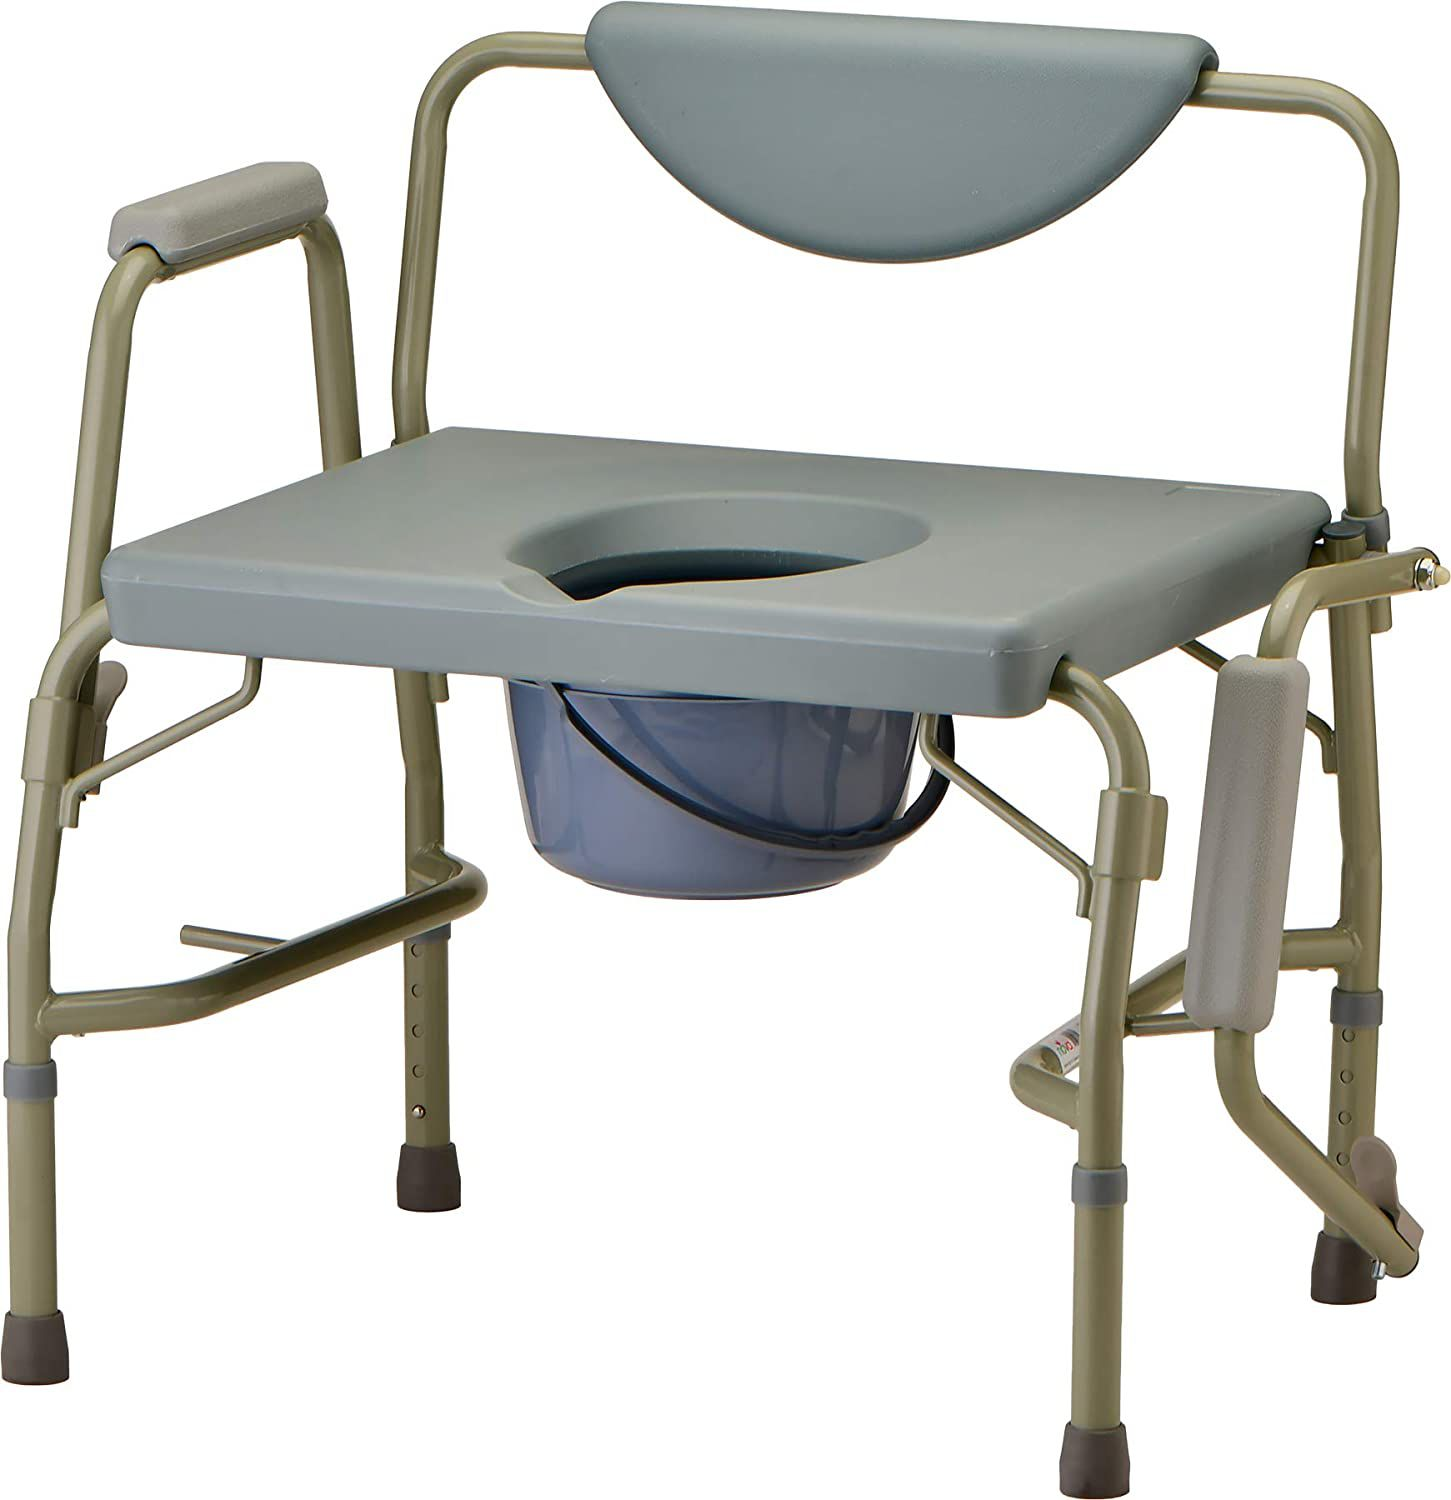 NOVA Medical Heavy Duty Bedside Commode Chair with Drop-Arm